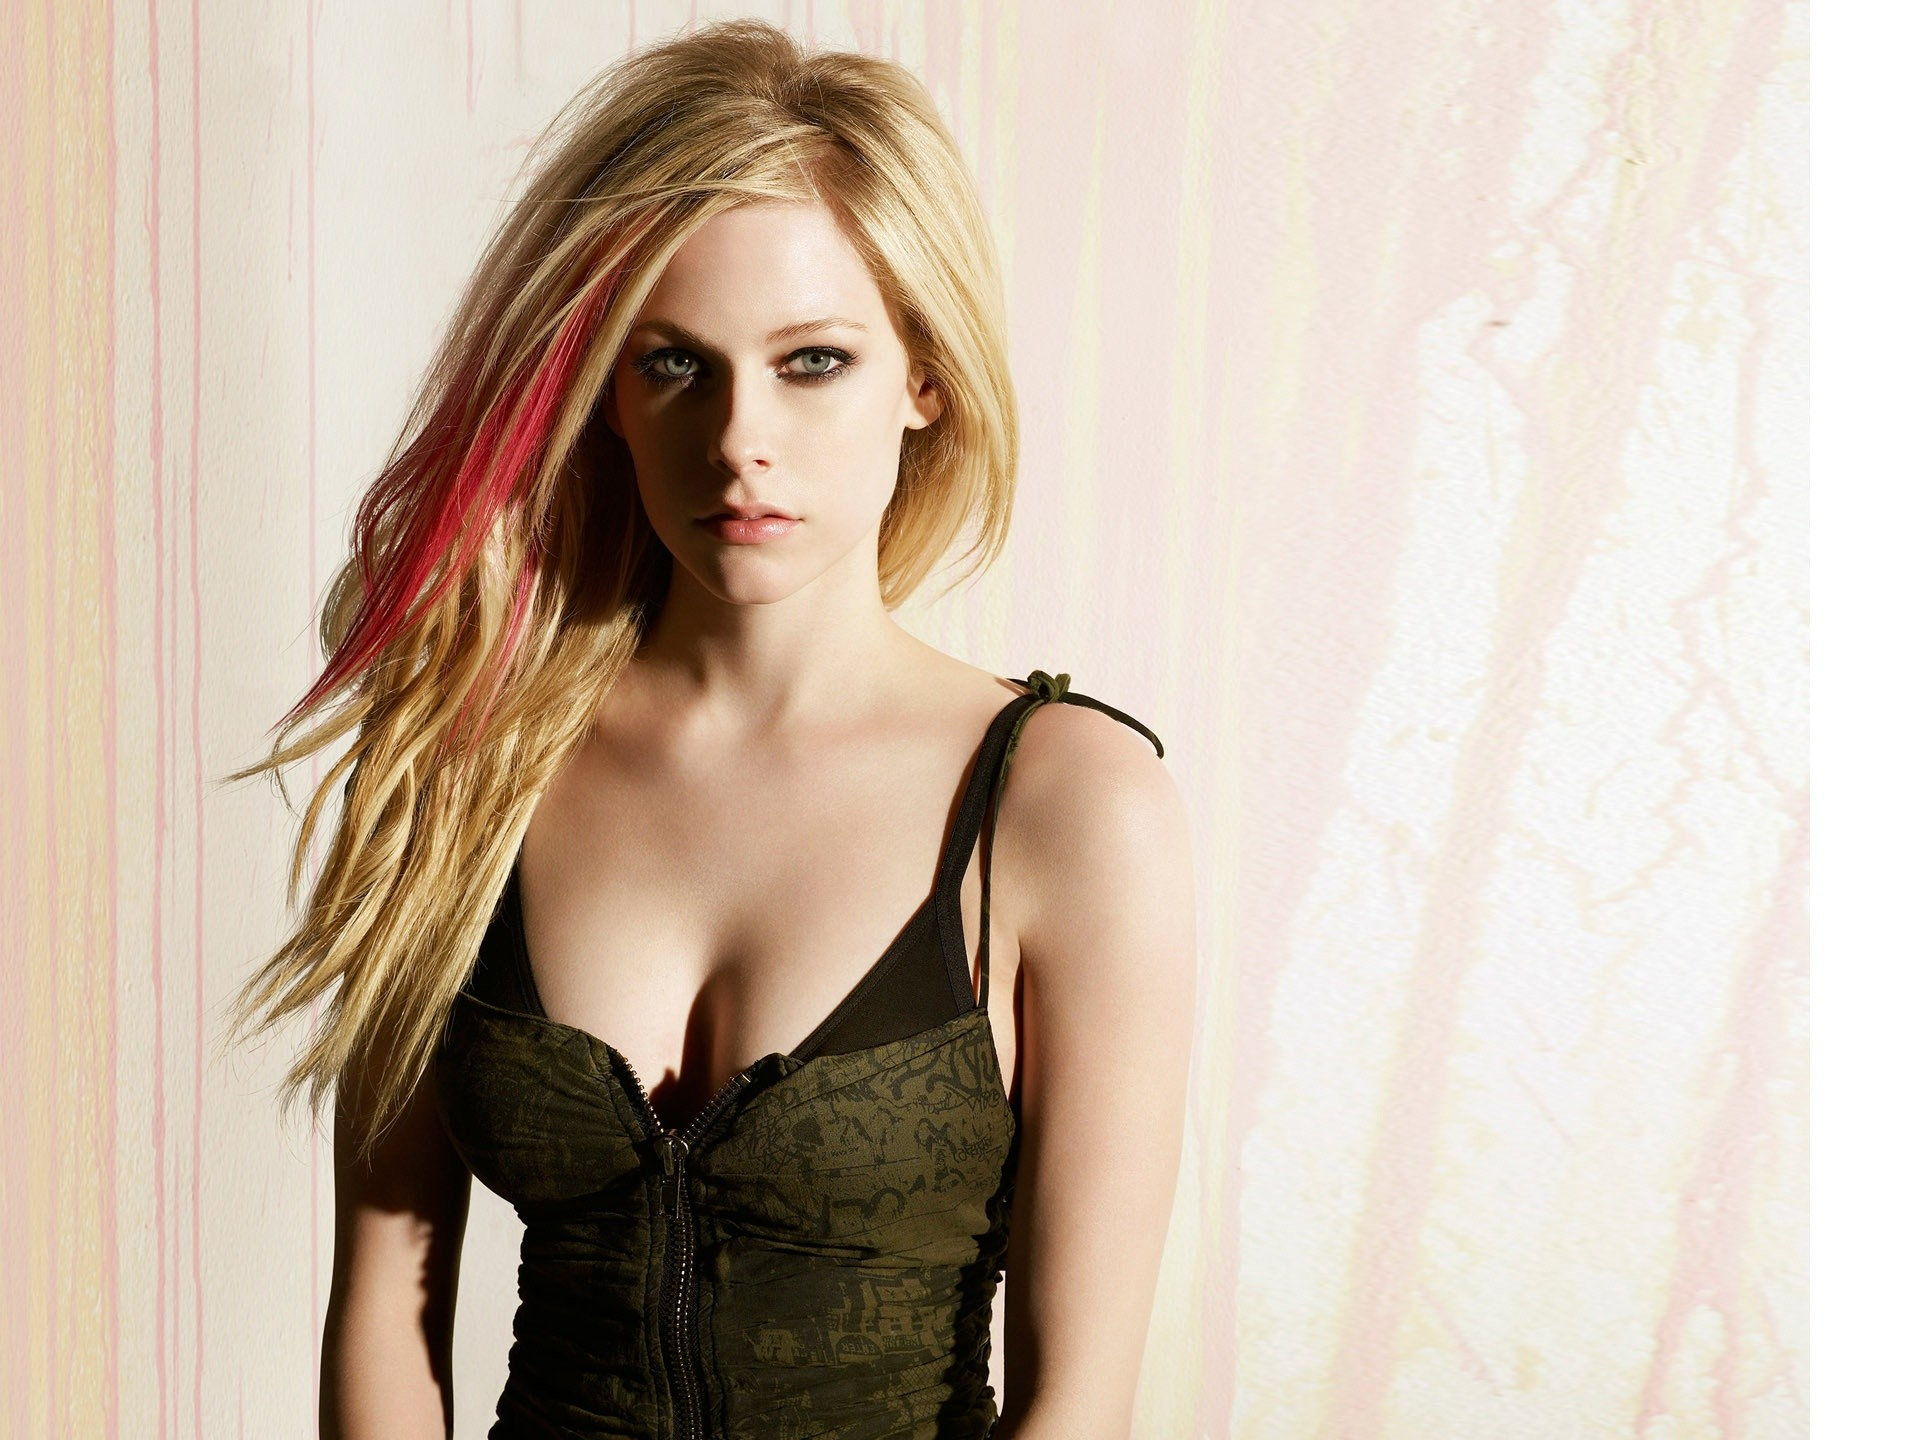 Best Girl Wallpaper For Mobile Avril Lavigne Wallpapers 71 Images